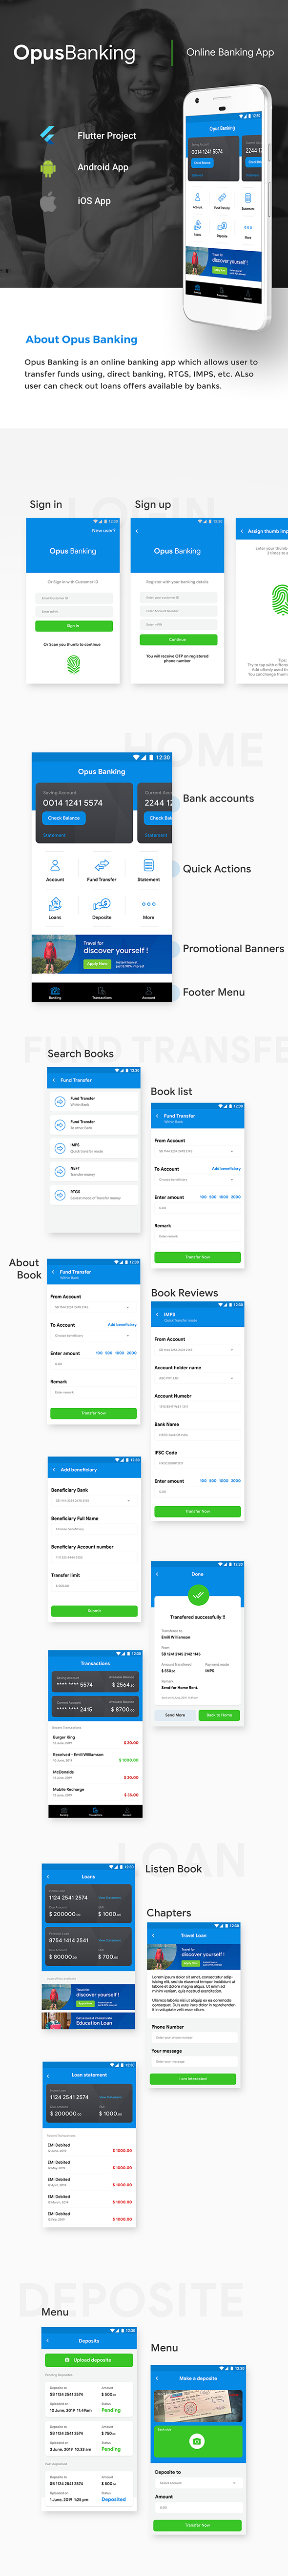 Online Banking Android App + Online Banking iOS App Template| Bank App| Opus Banking | Flutter - 6